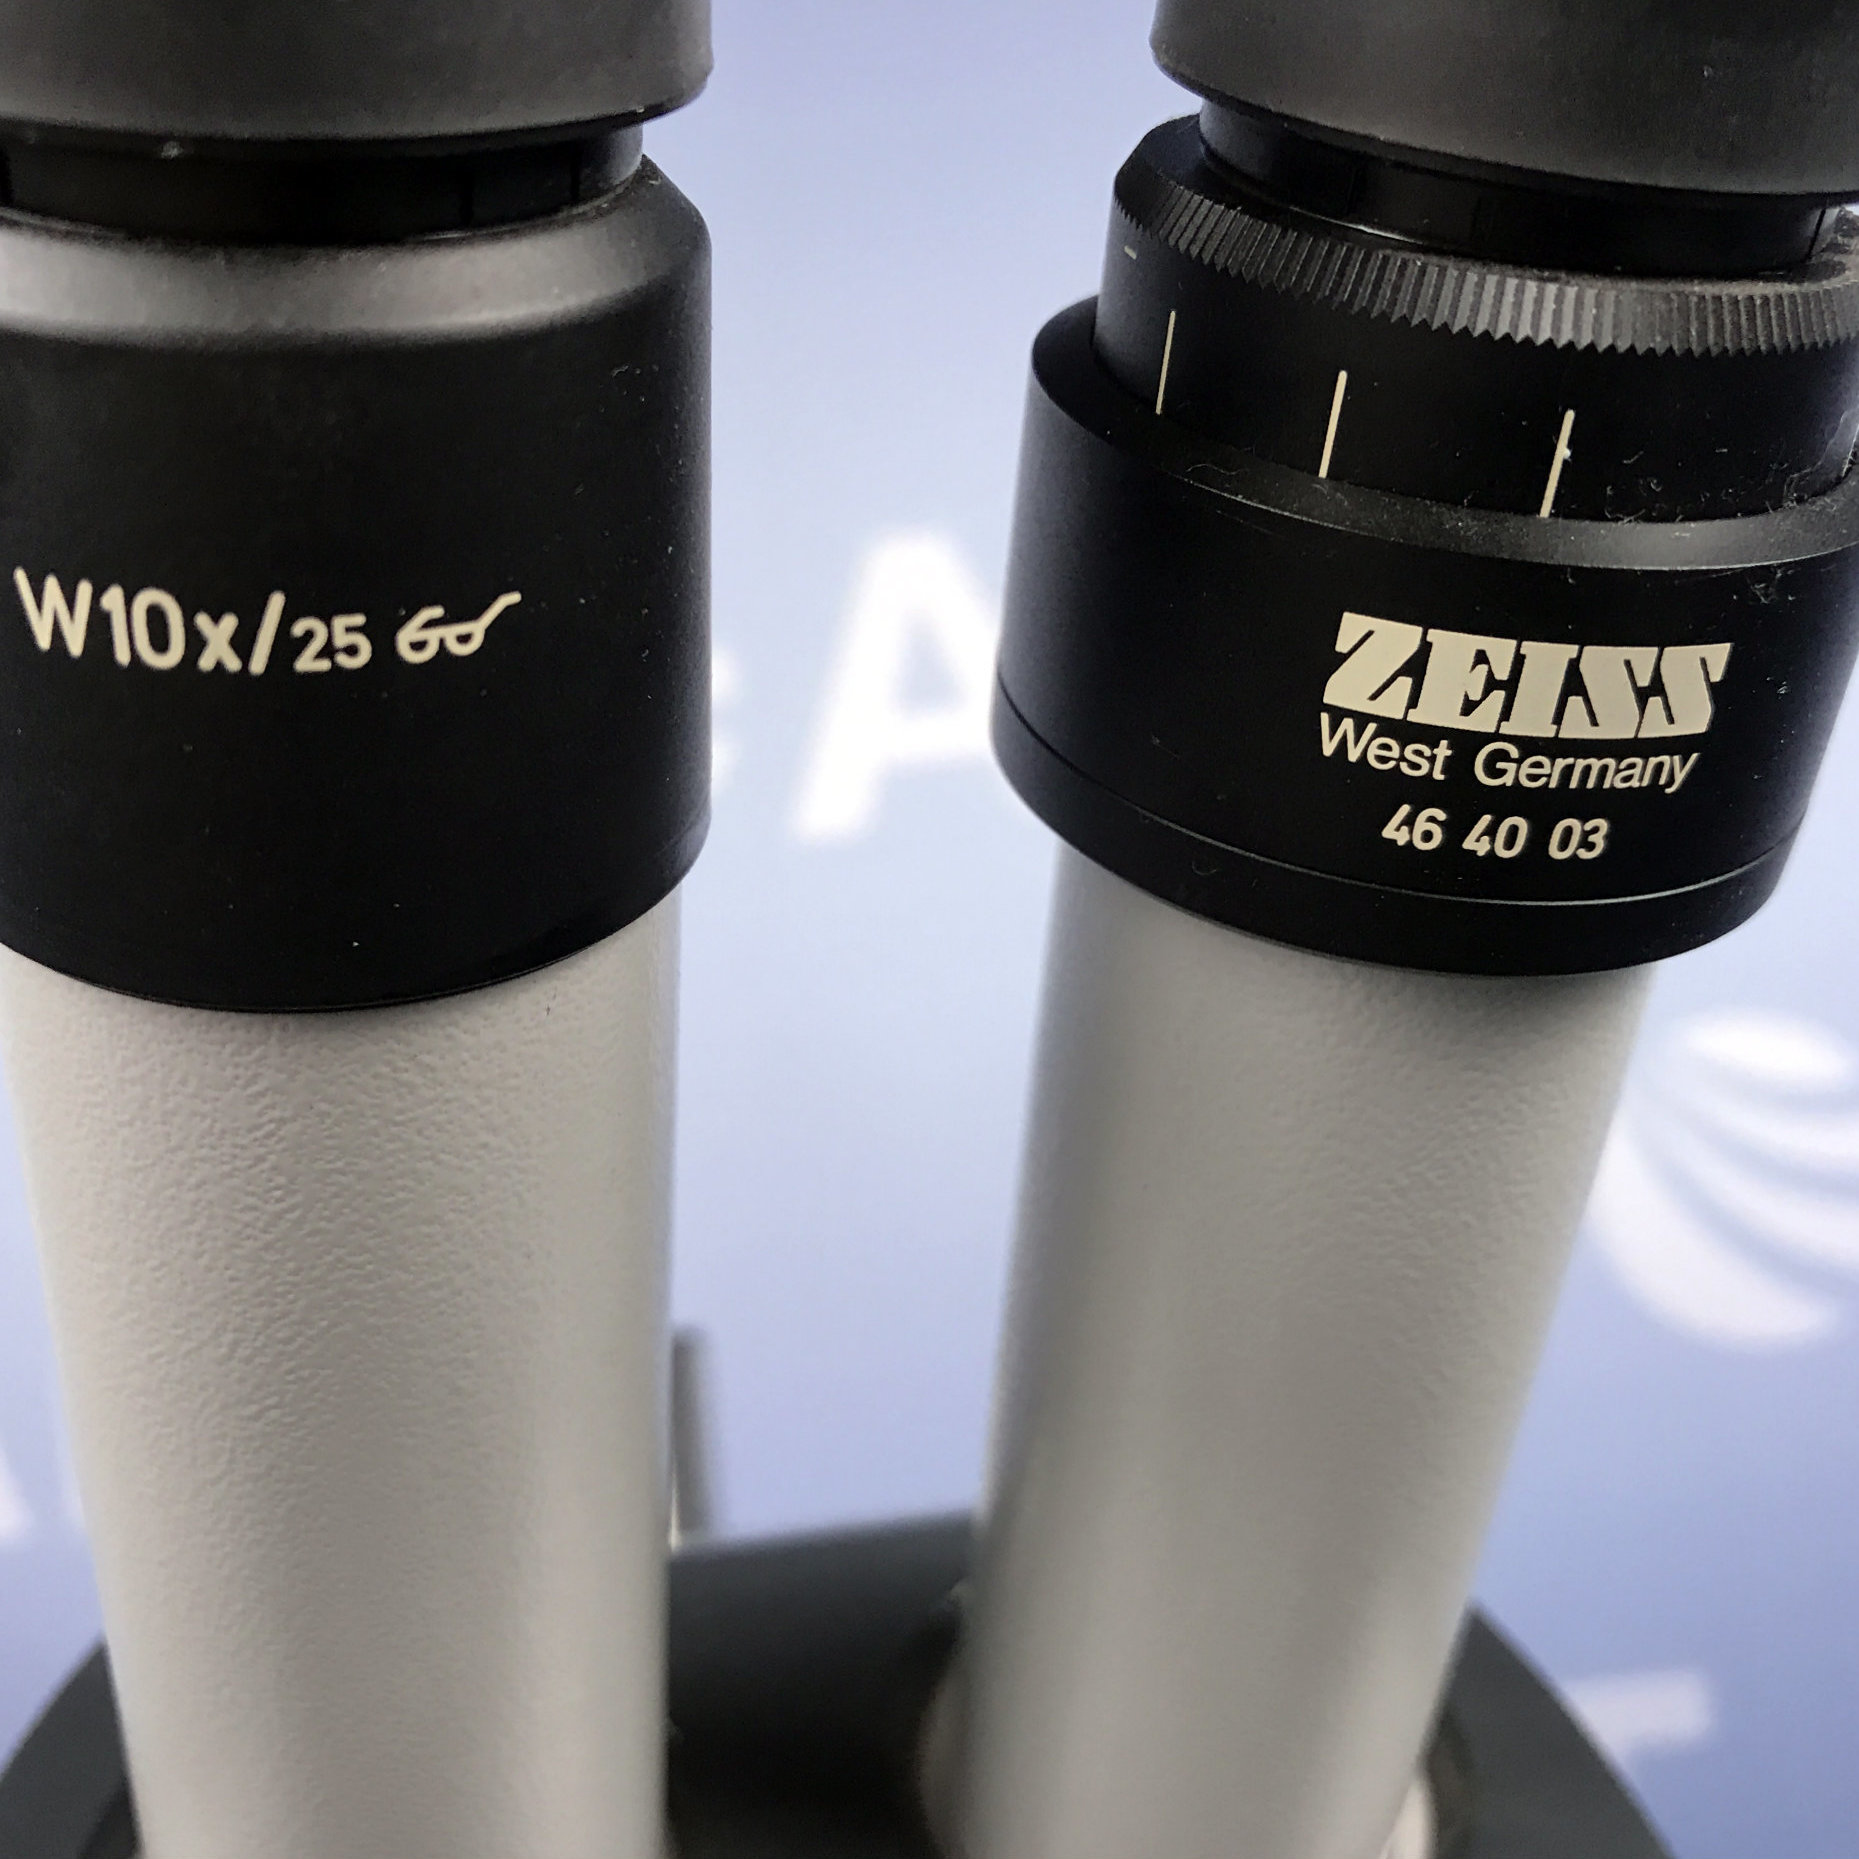 Carl Zeiss 47 50 52 - 9901 Stereo Zoom Microscope Image